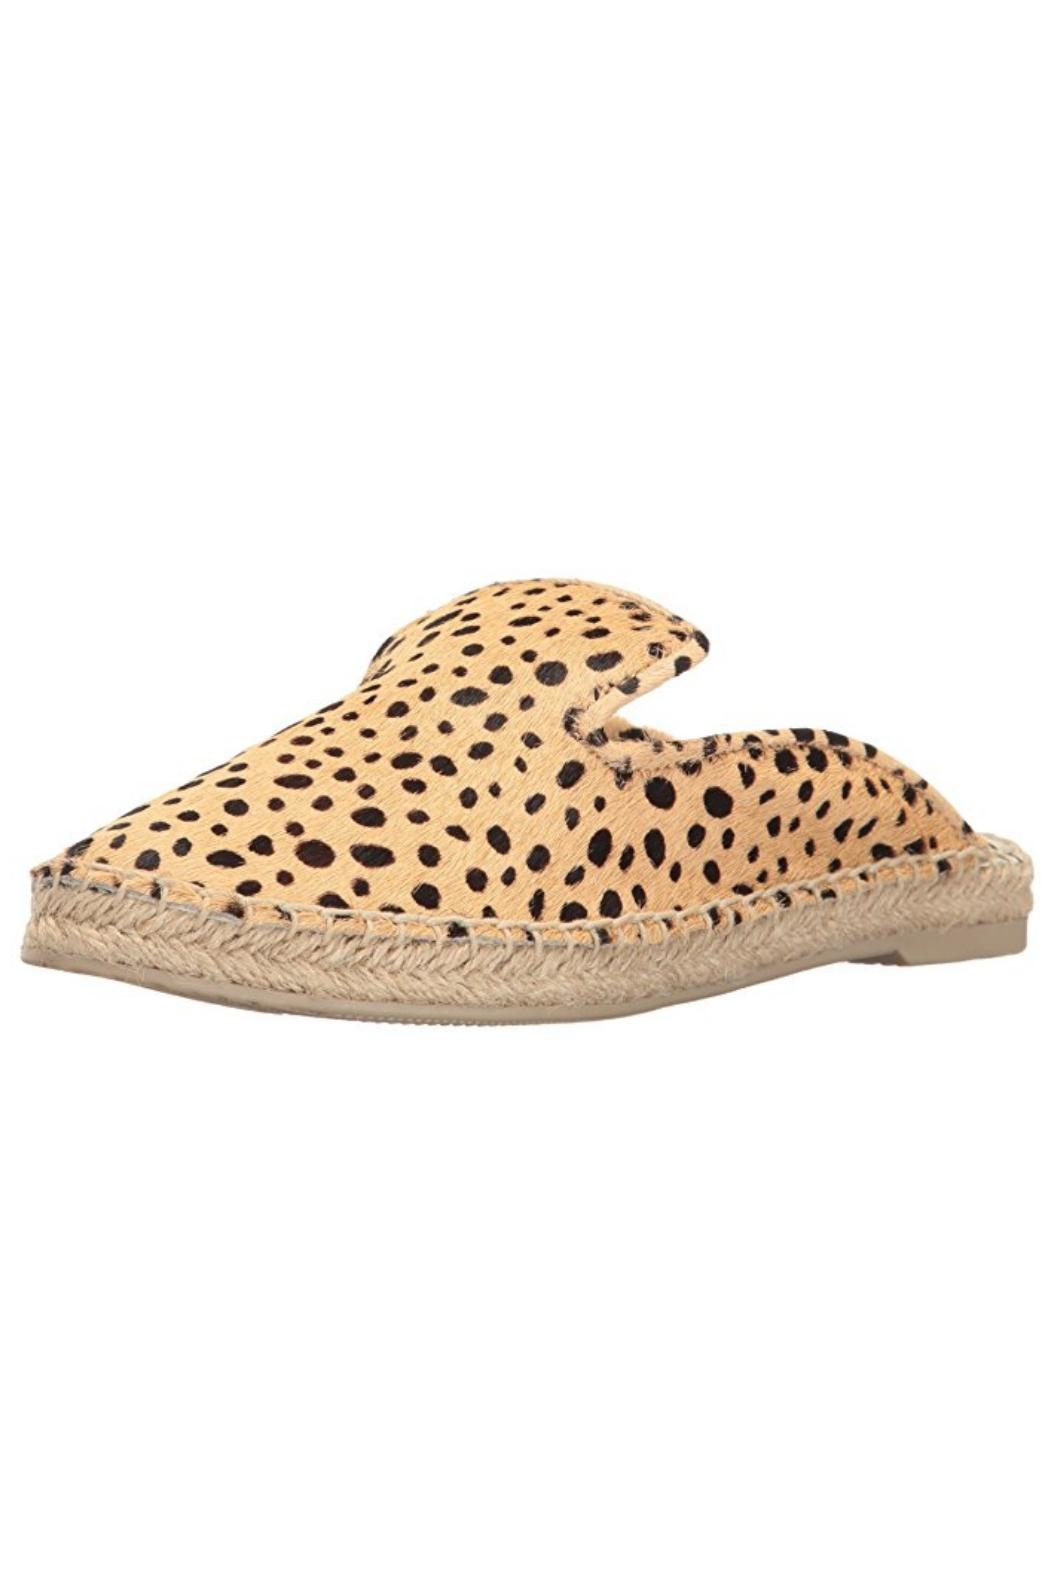 Dolce Vita Baz Moccasin Footwear - Front Cropped Image